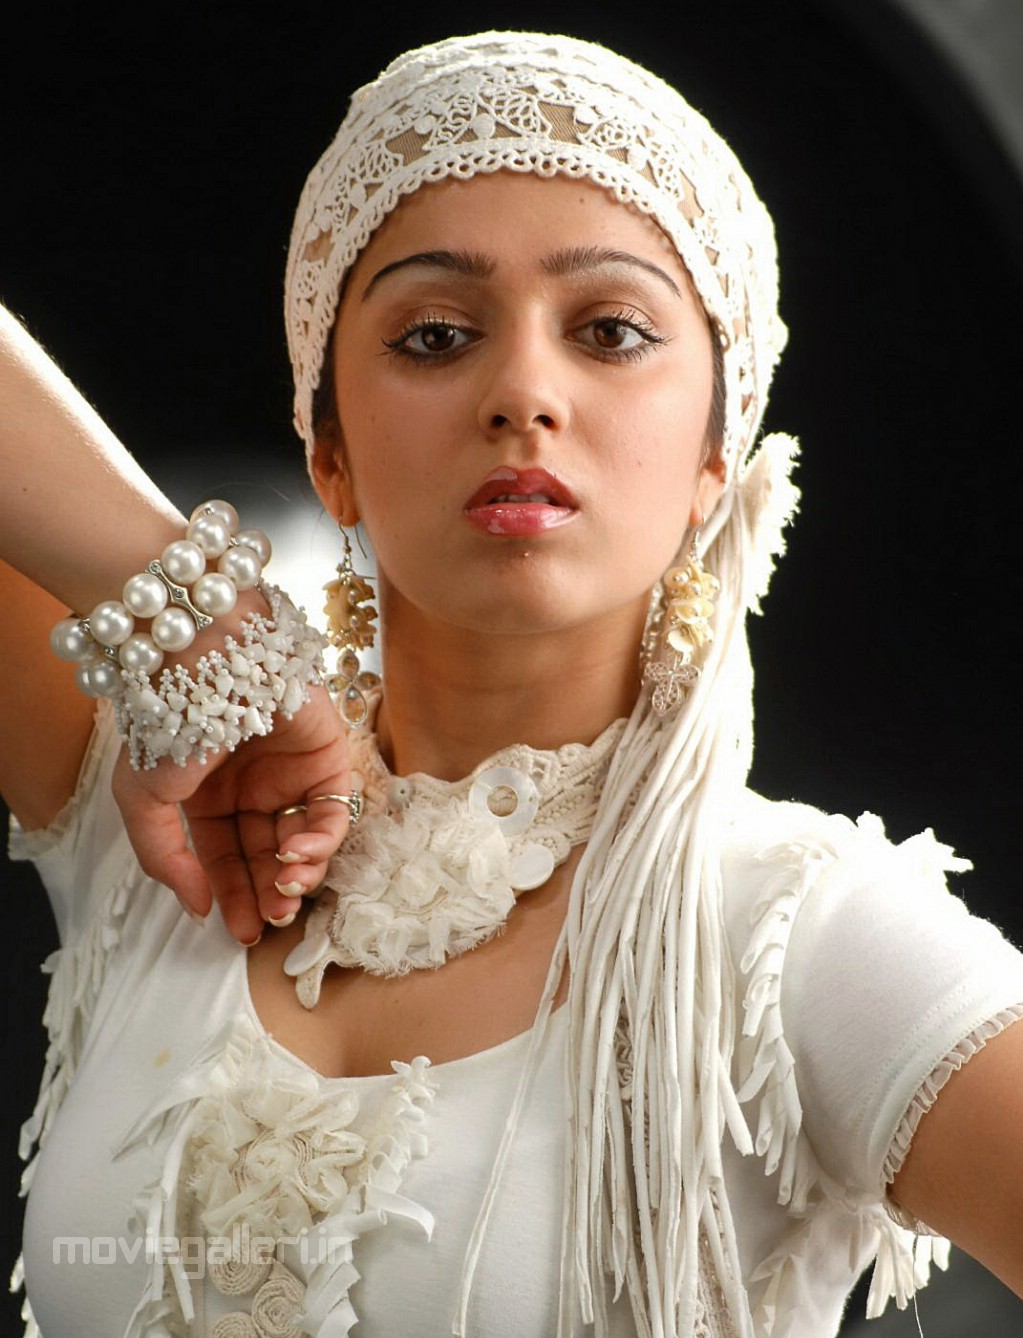 charmi latest photos, charmi latest pics, charmi latest images | new